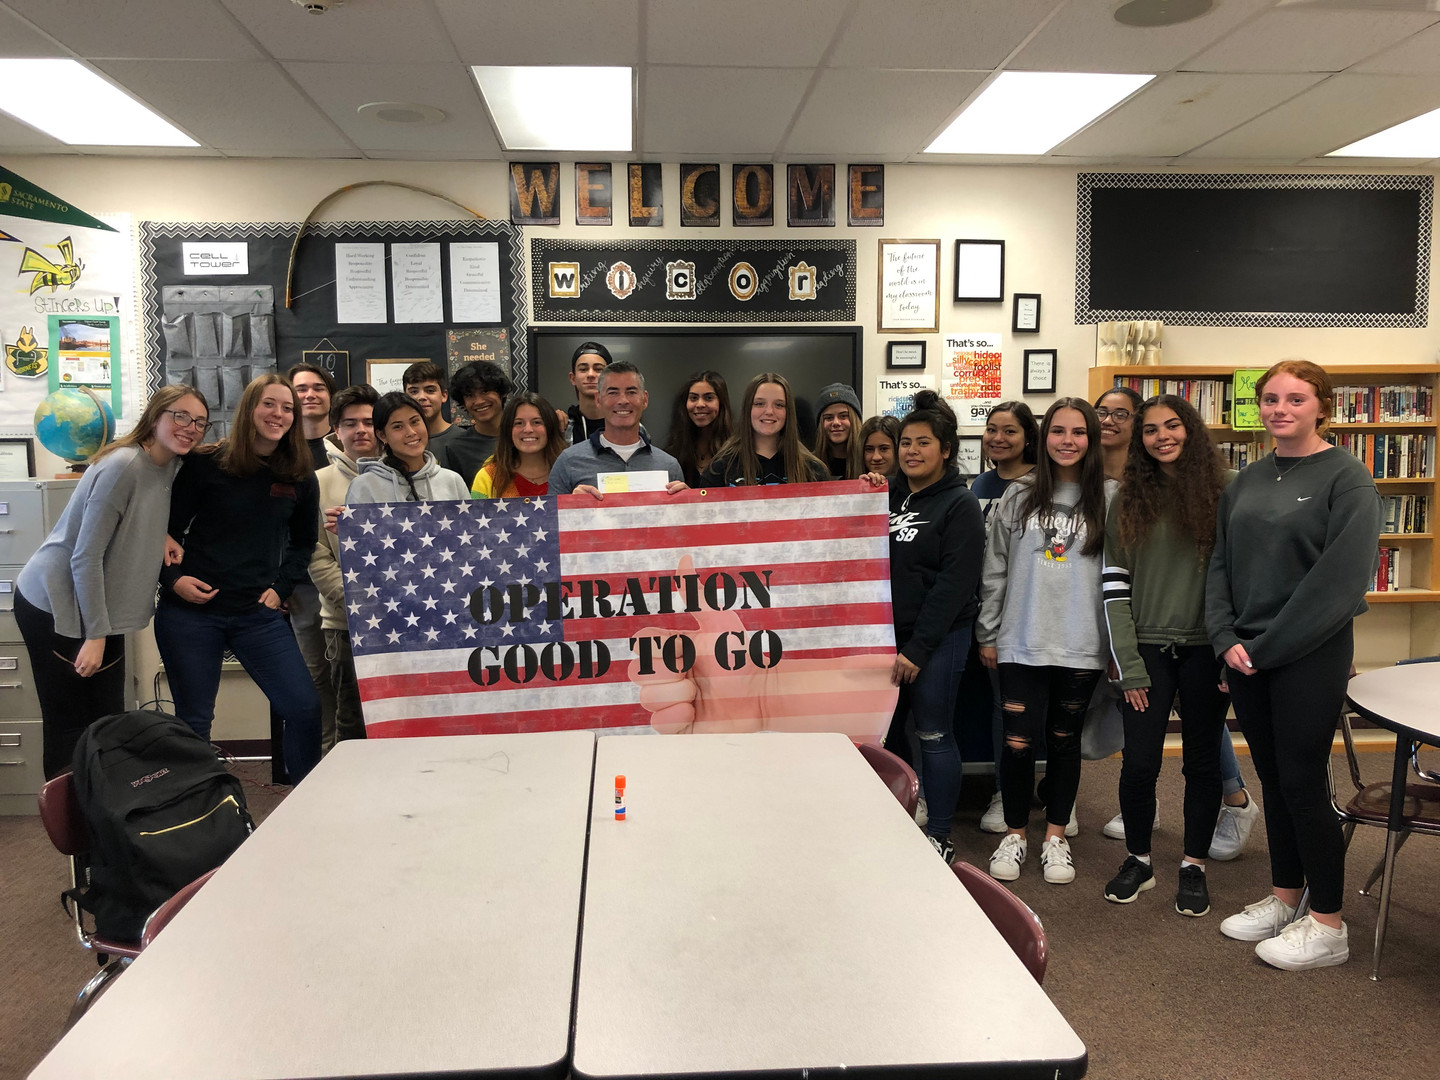 Union Mine High School Supporting Operation Good To Go for Homeless Veterans